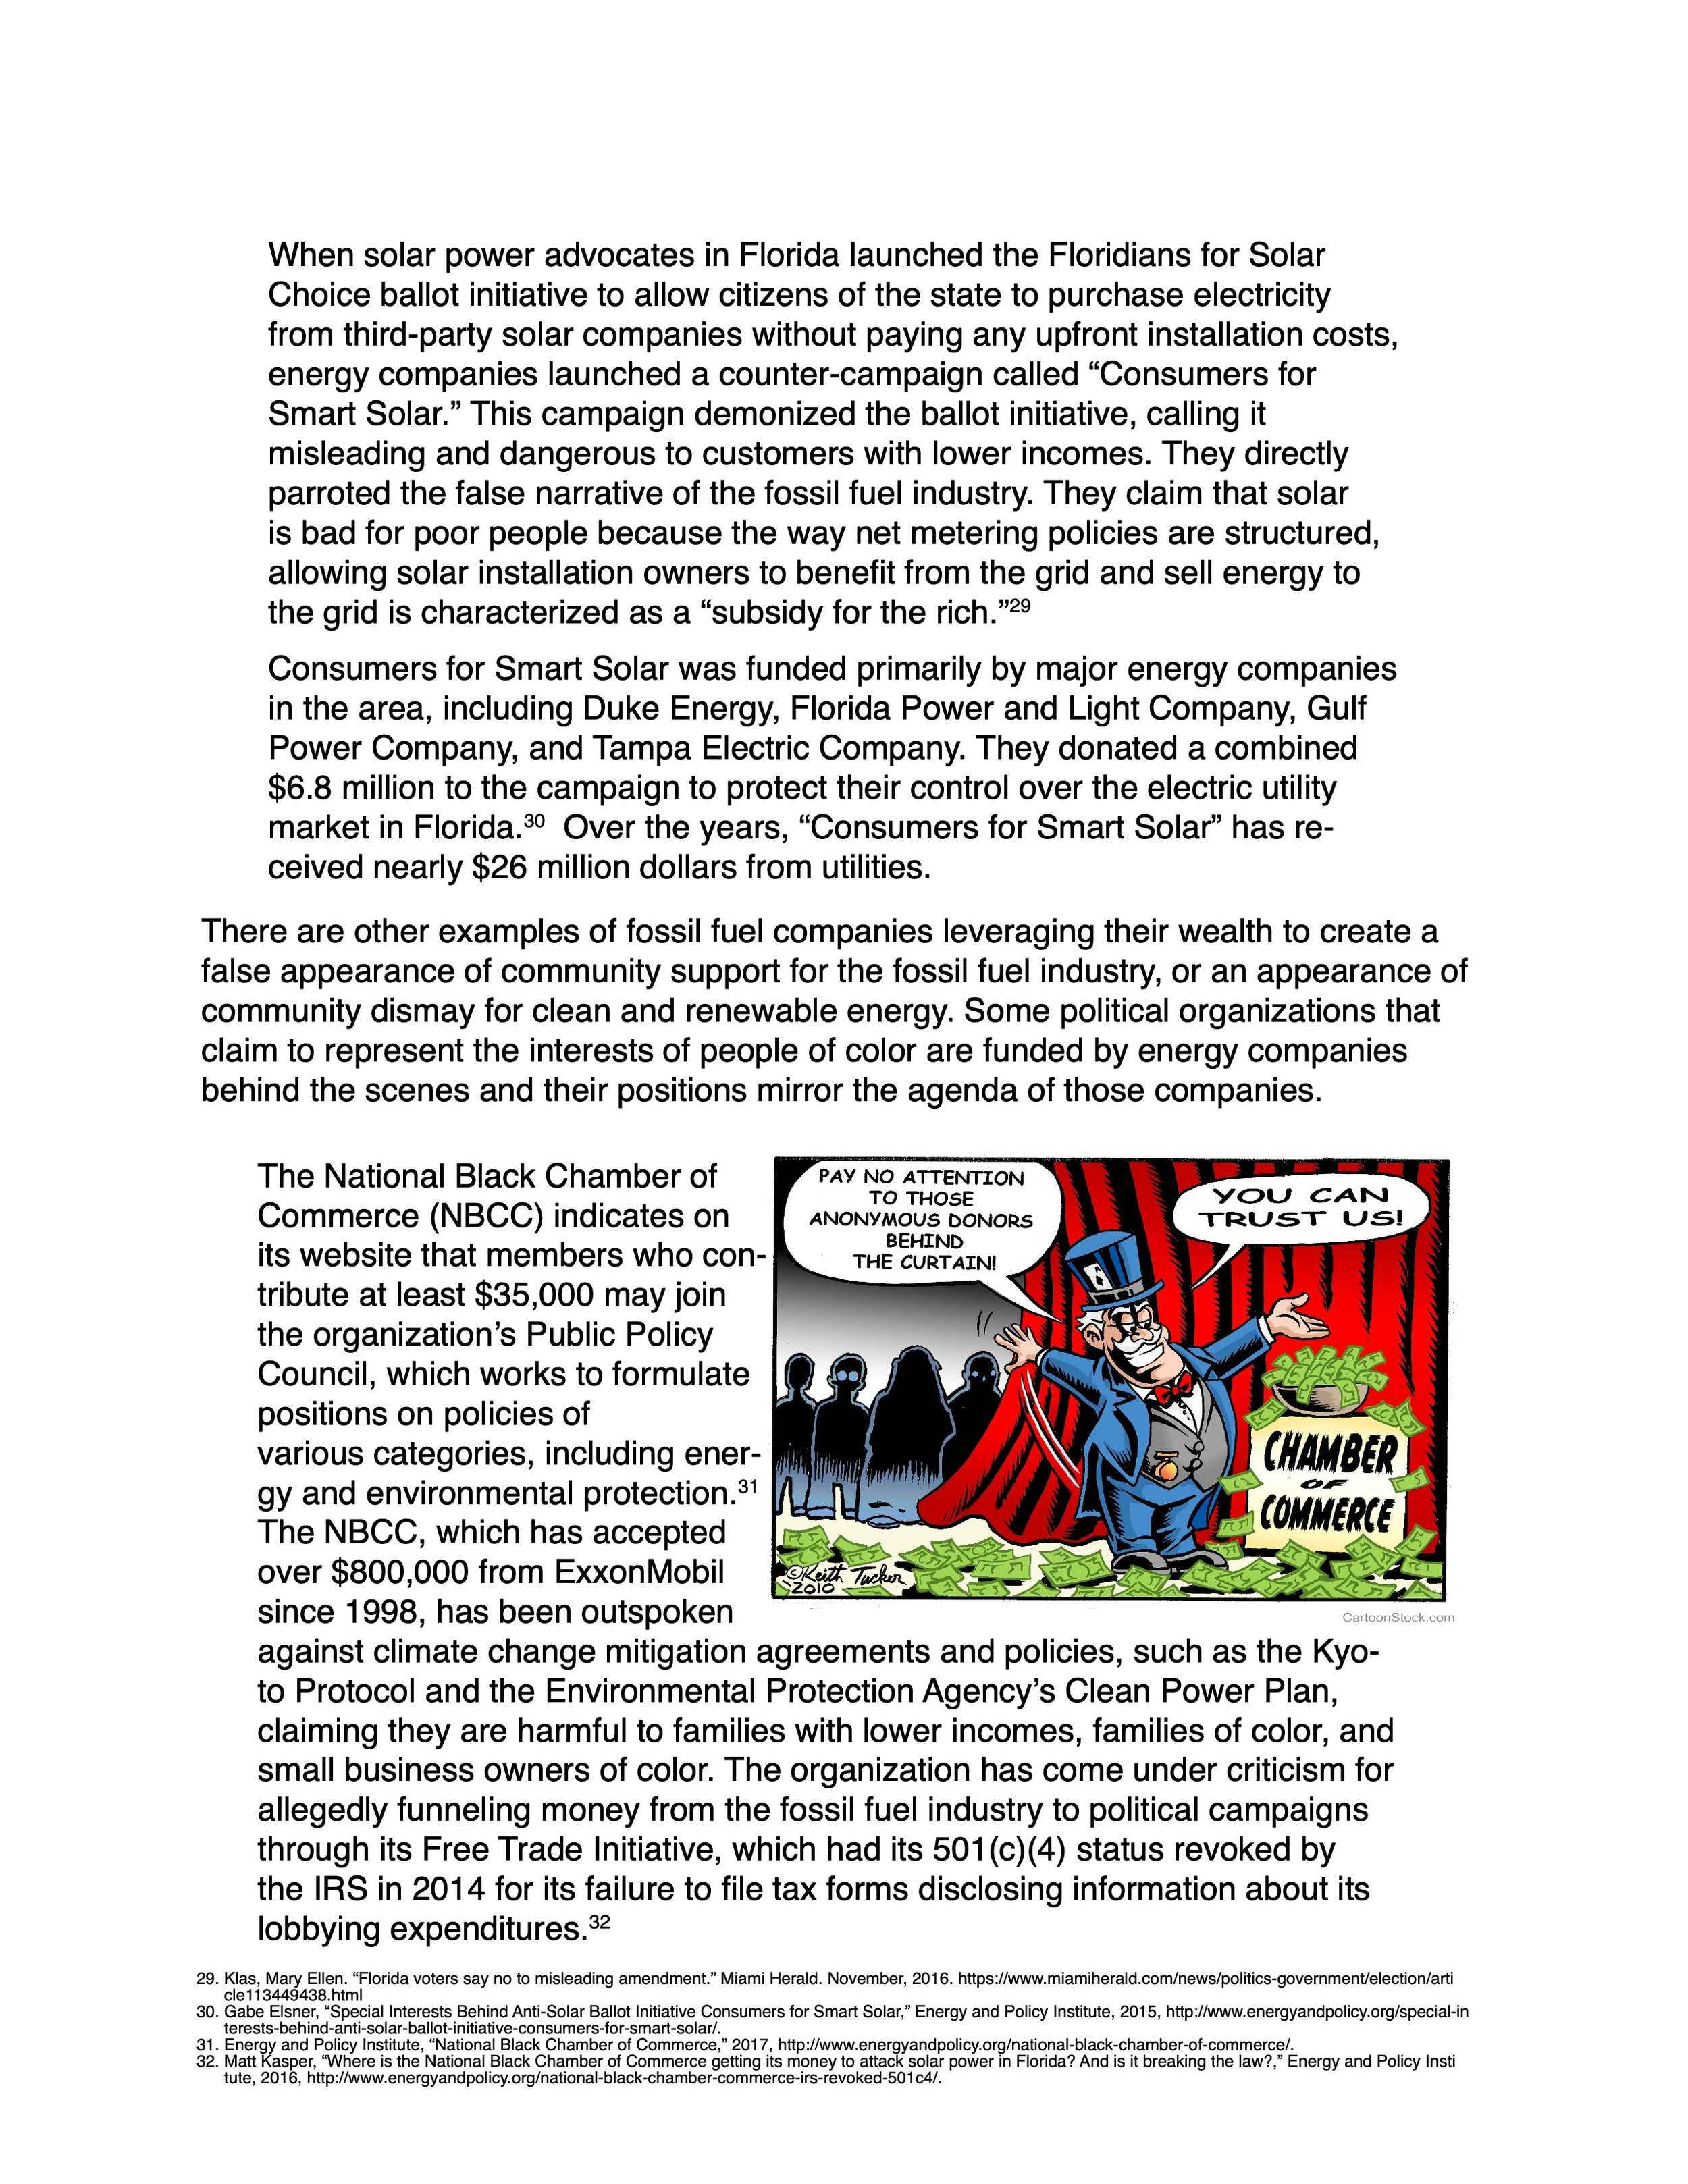 Fossil-Fueled-Foolery-An-Illustrated-Primer-on-the-Top-10-Manipulation-Tactics-of-the-Fossil-Fuel-Industry 13.jpeg